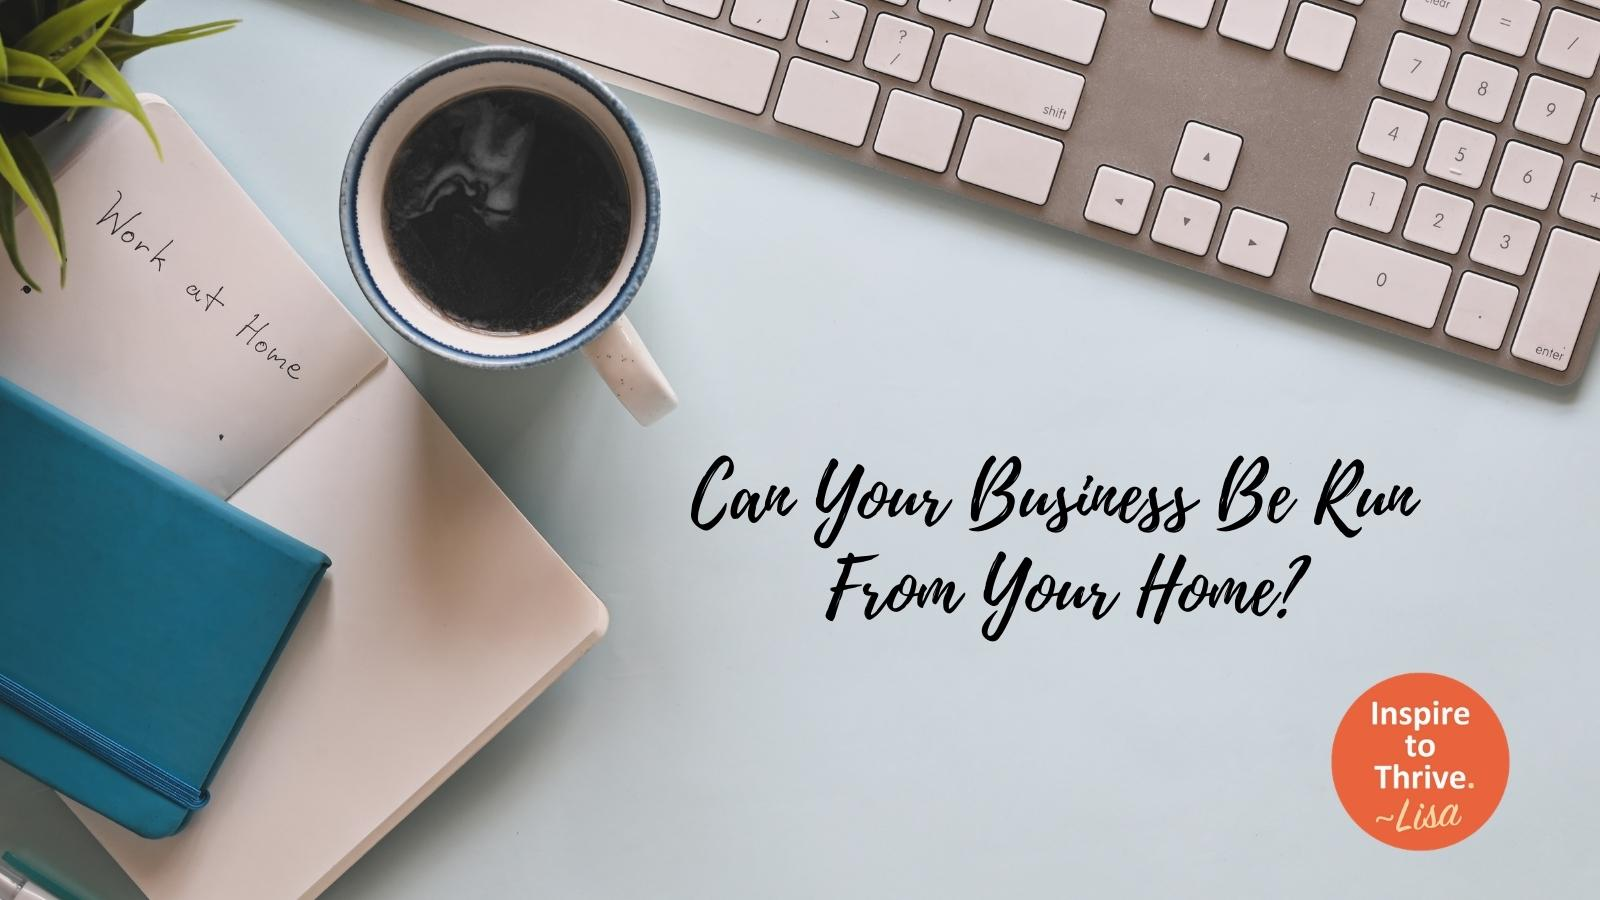 Can your business be run from your home?